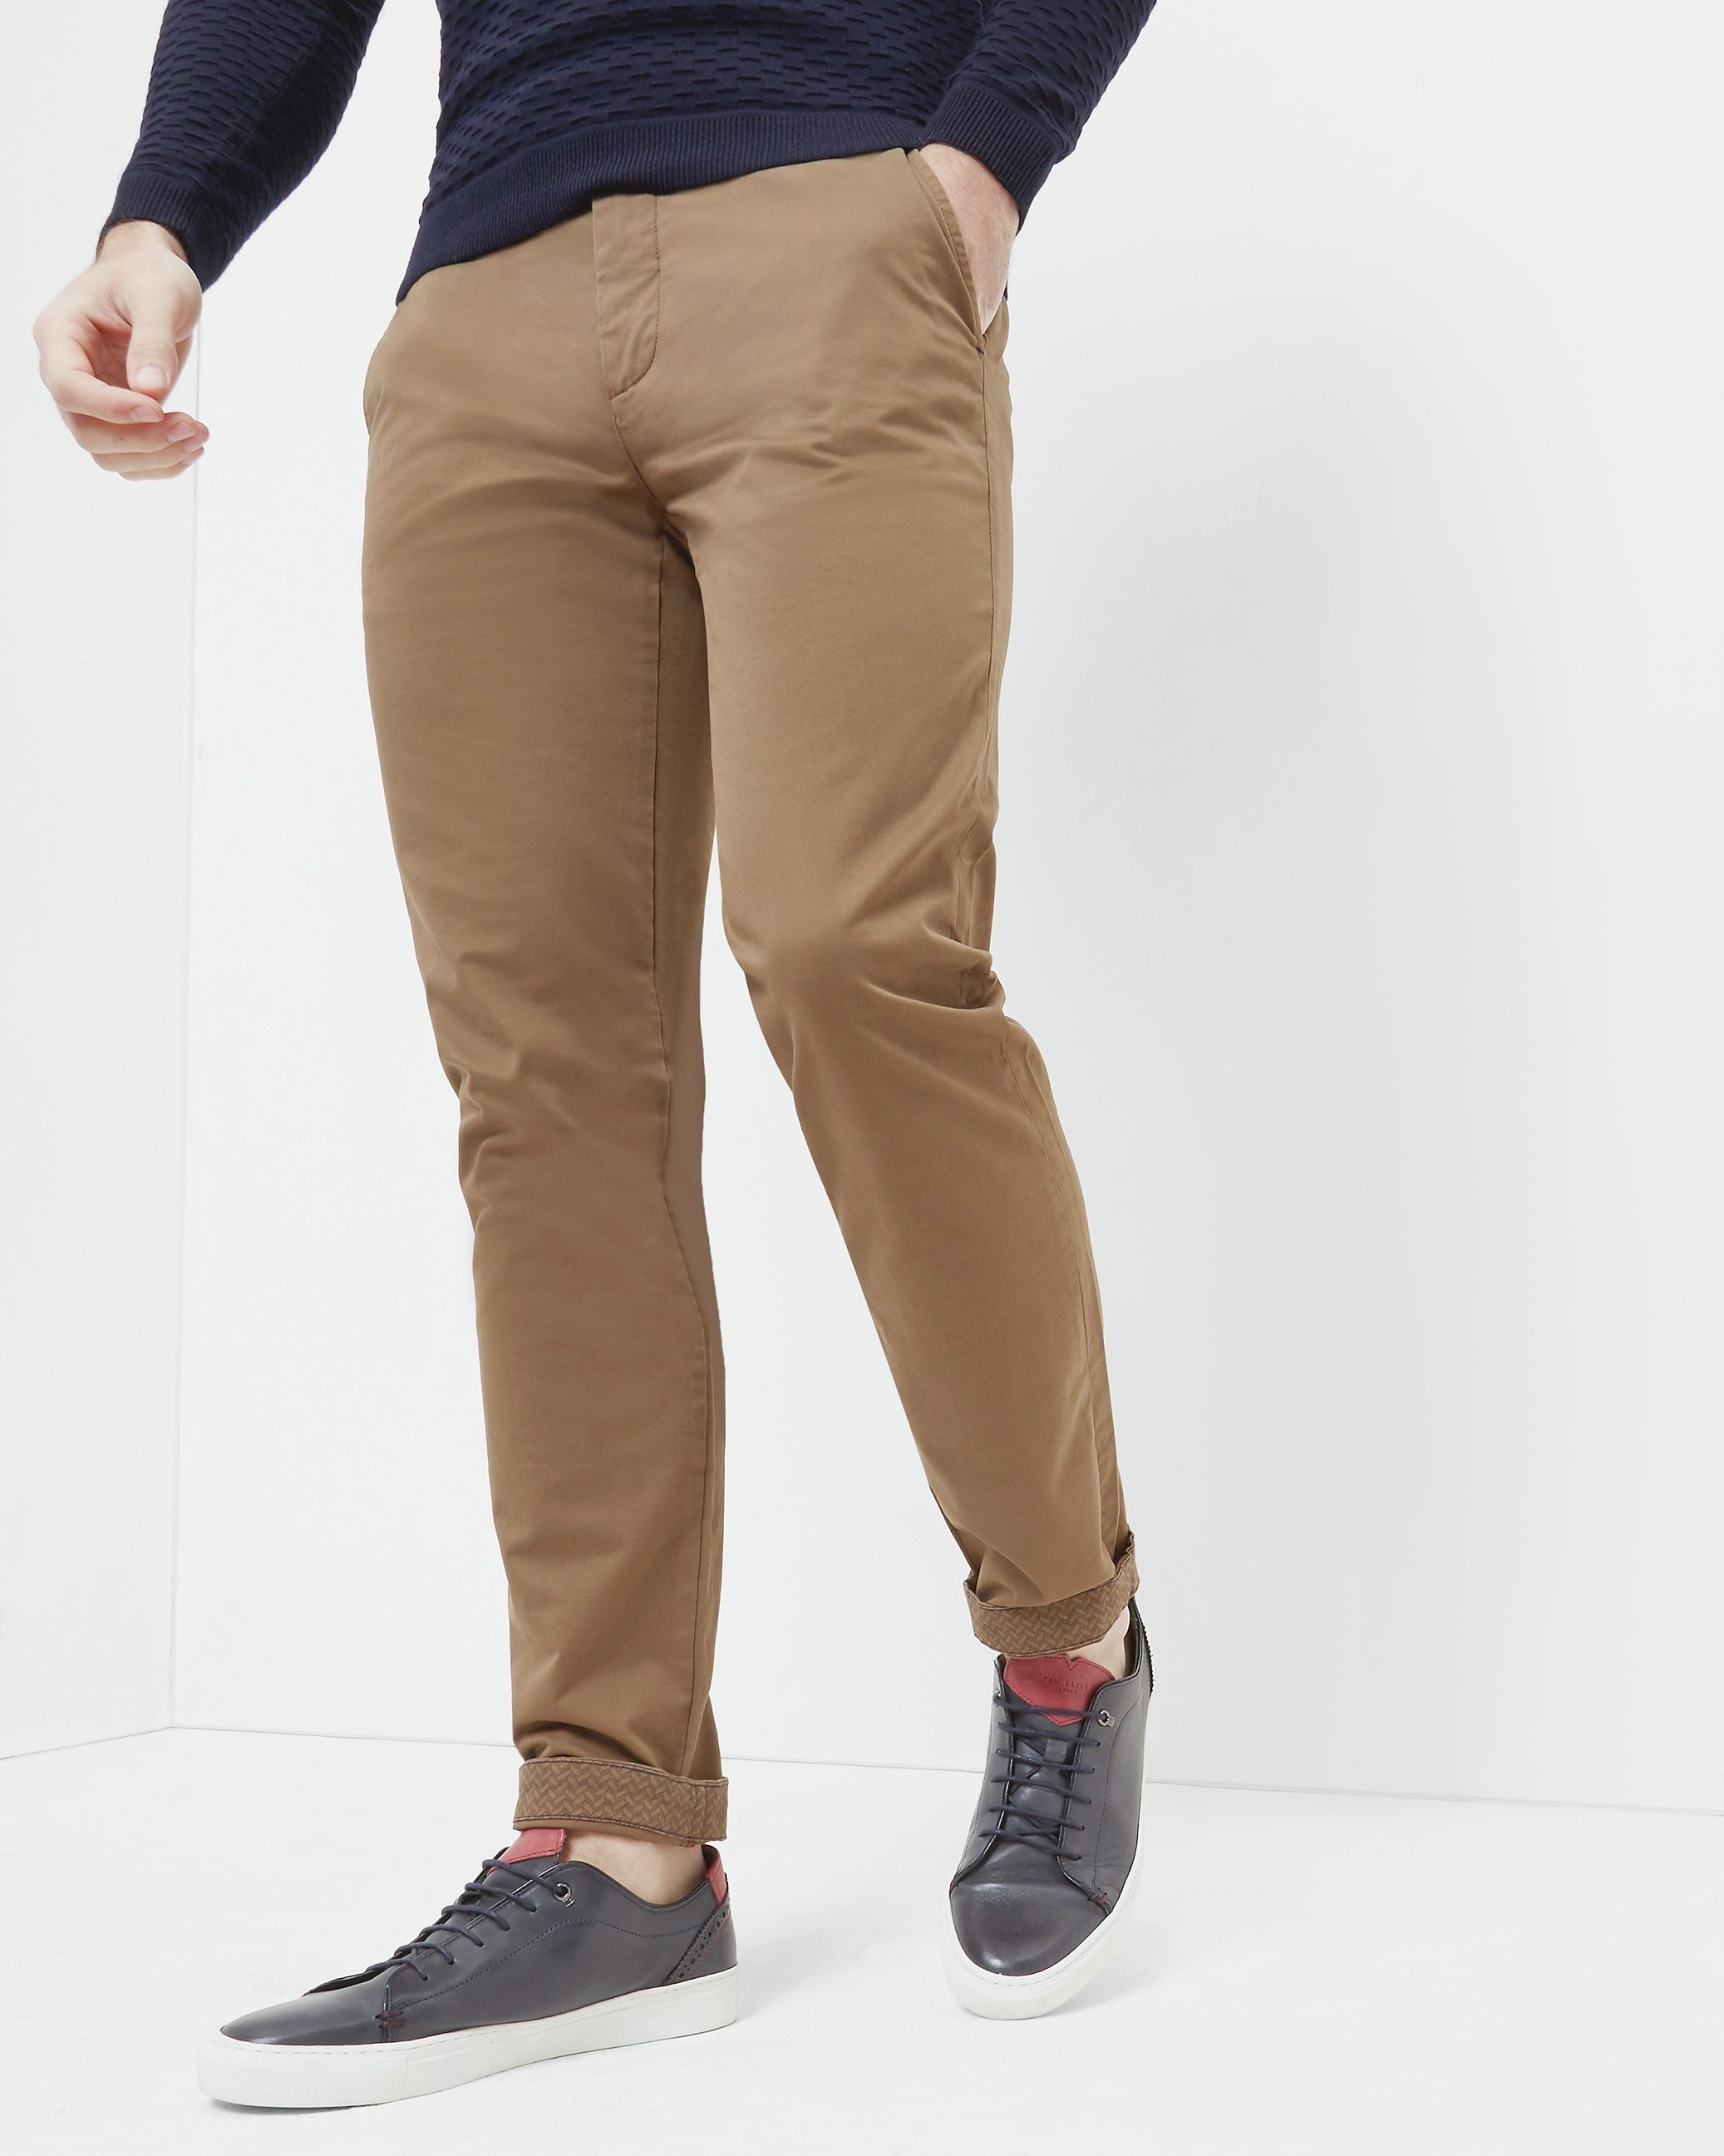 Ted Baker Procor Slim Fit Chinos, Tan